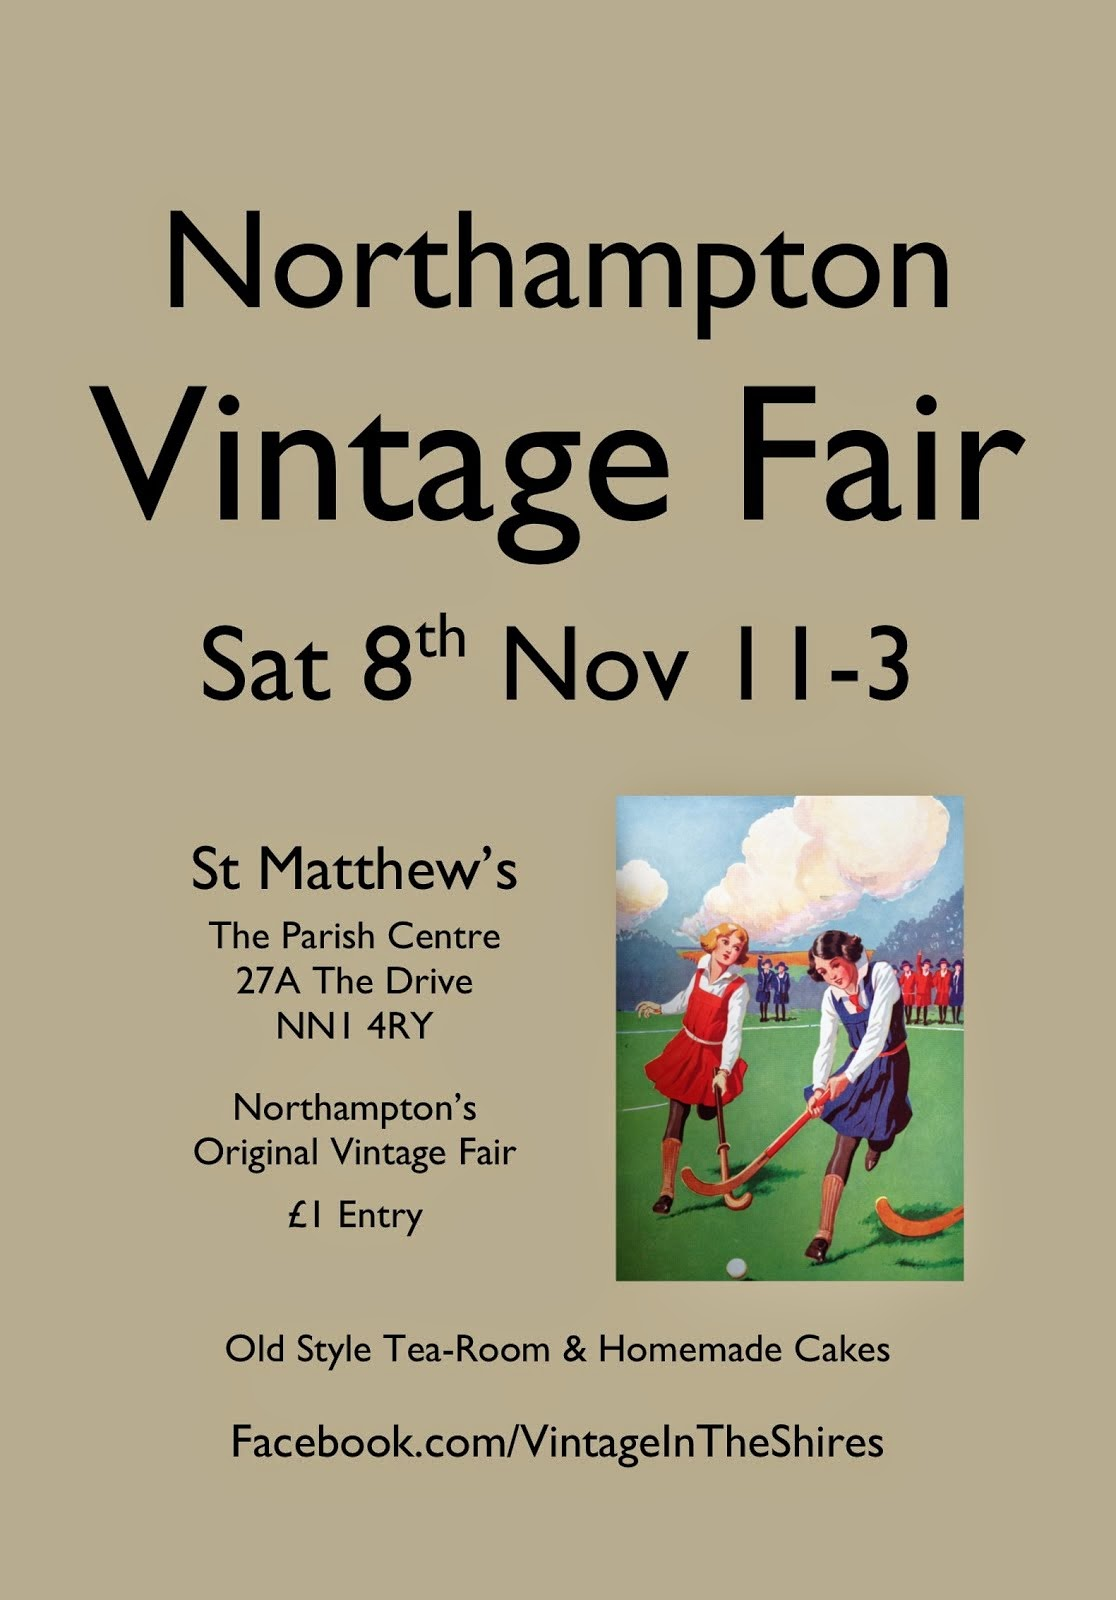 The Northampton Vintage Fair